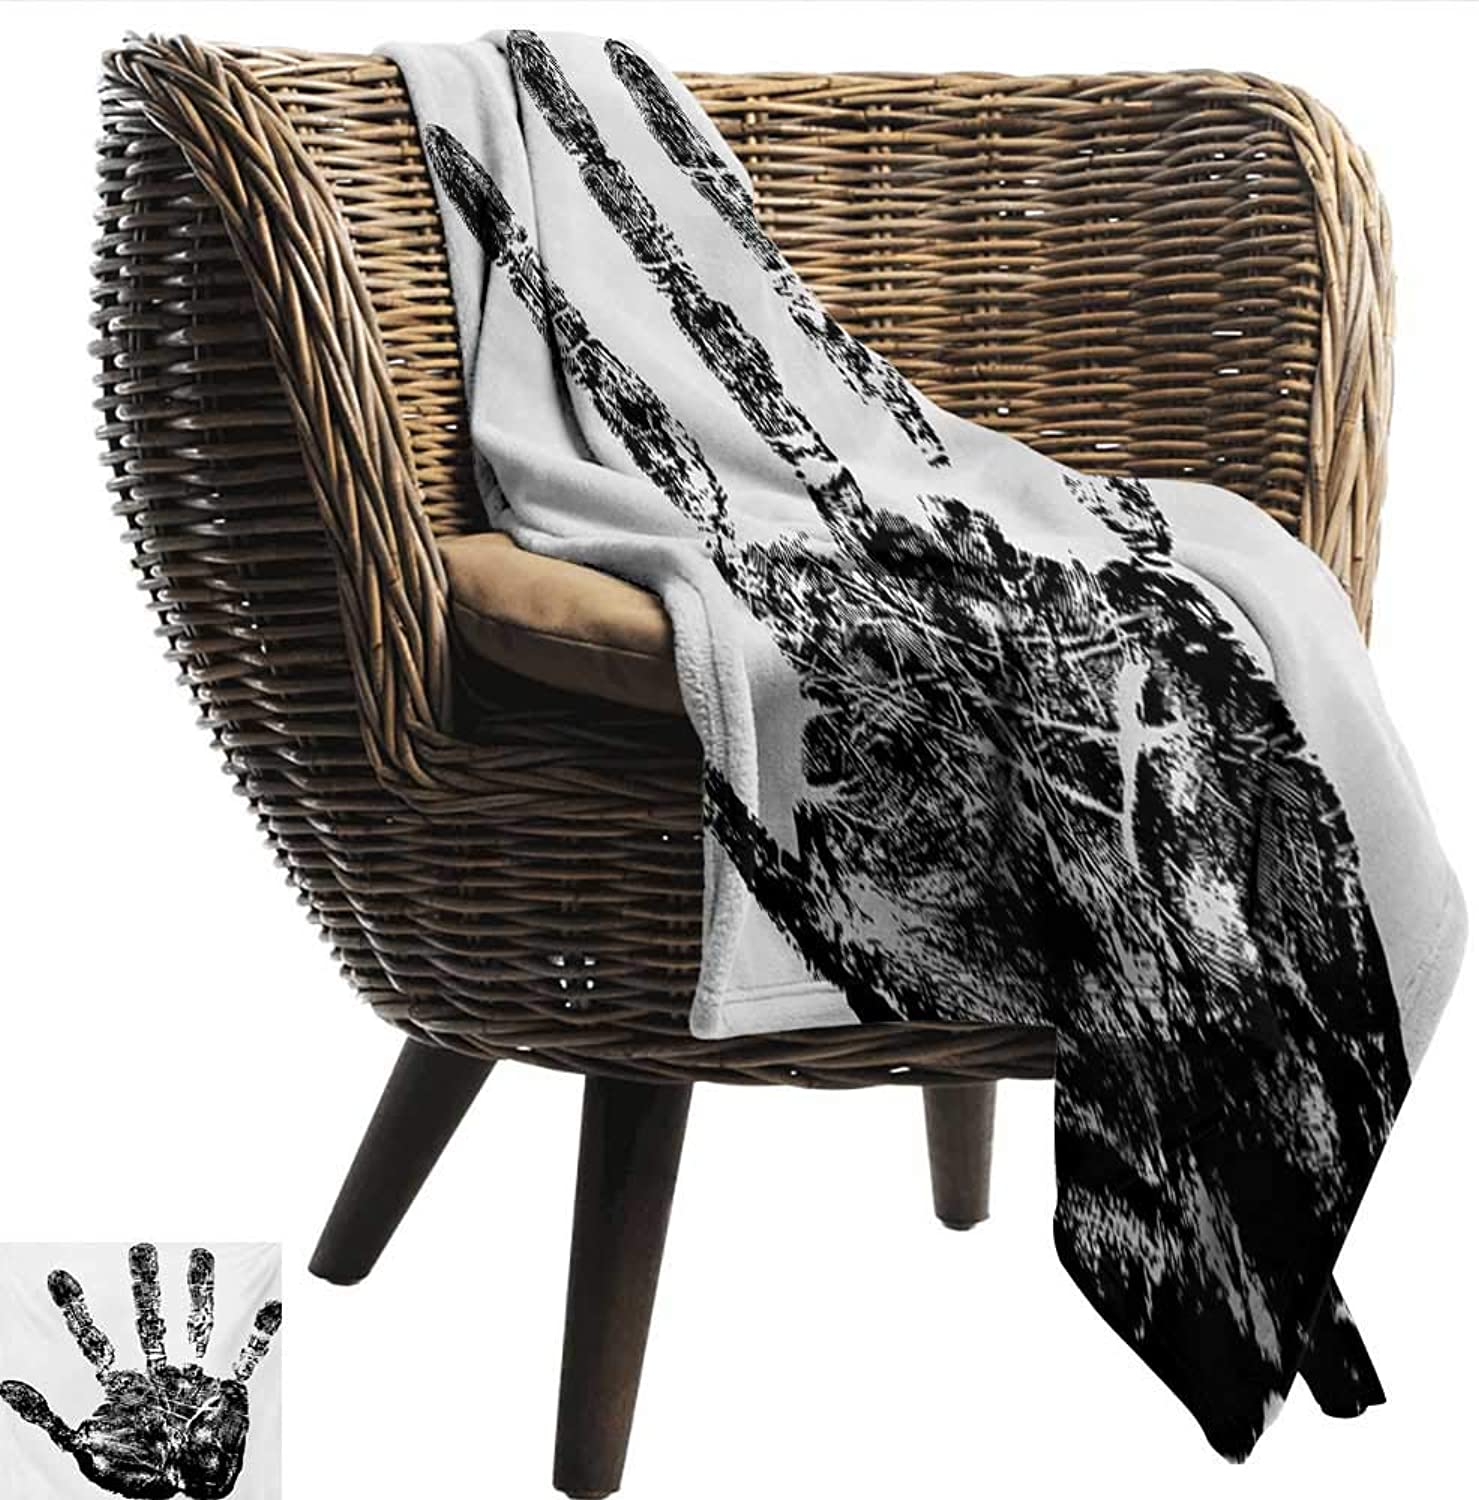 Travel Throwing Blanket Modern Hand Print with Human Fingers in Grunge Motley Stylized Identity Stamp Touch Display Print Summer Quilt Comforter W60 xL51 Sofa,Picnic,Camping,Beach,Everyday use